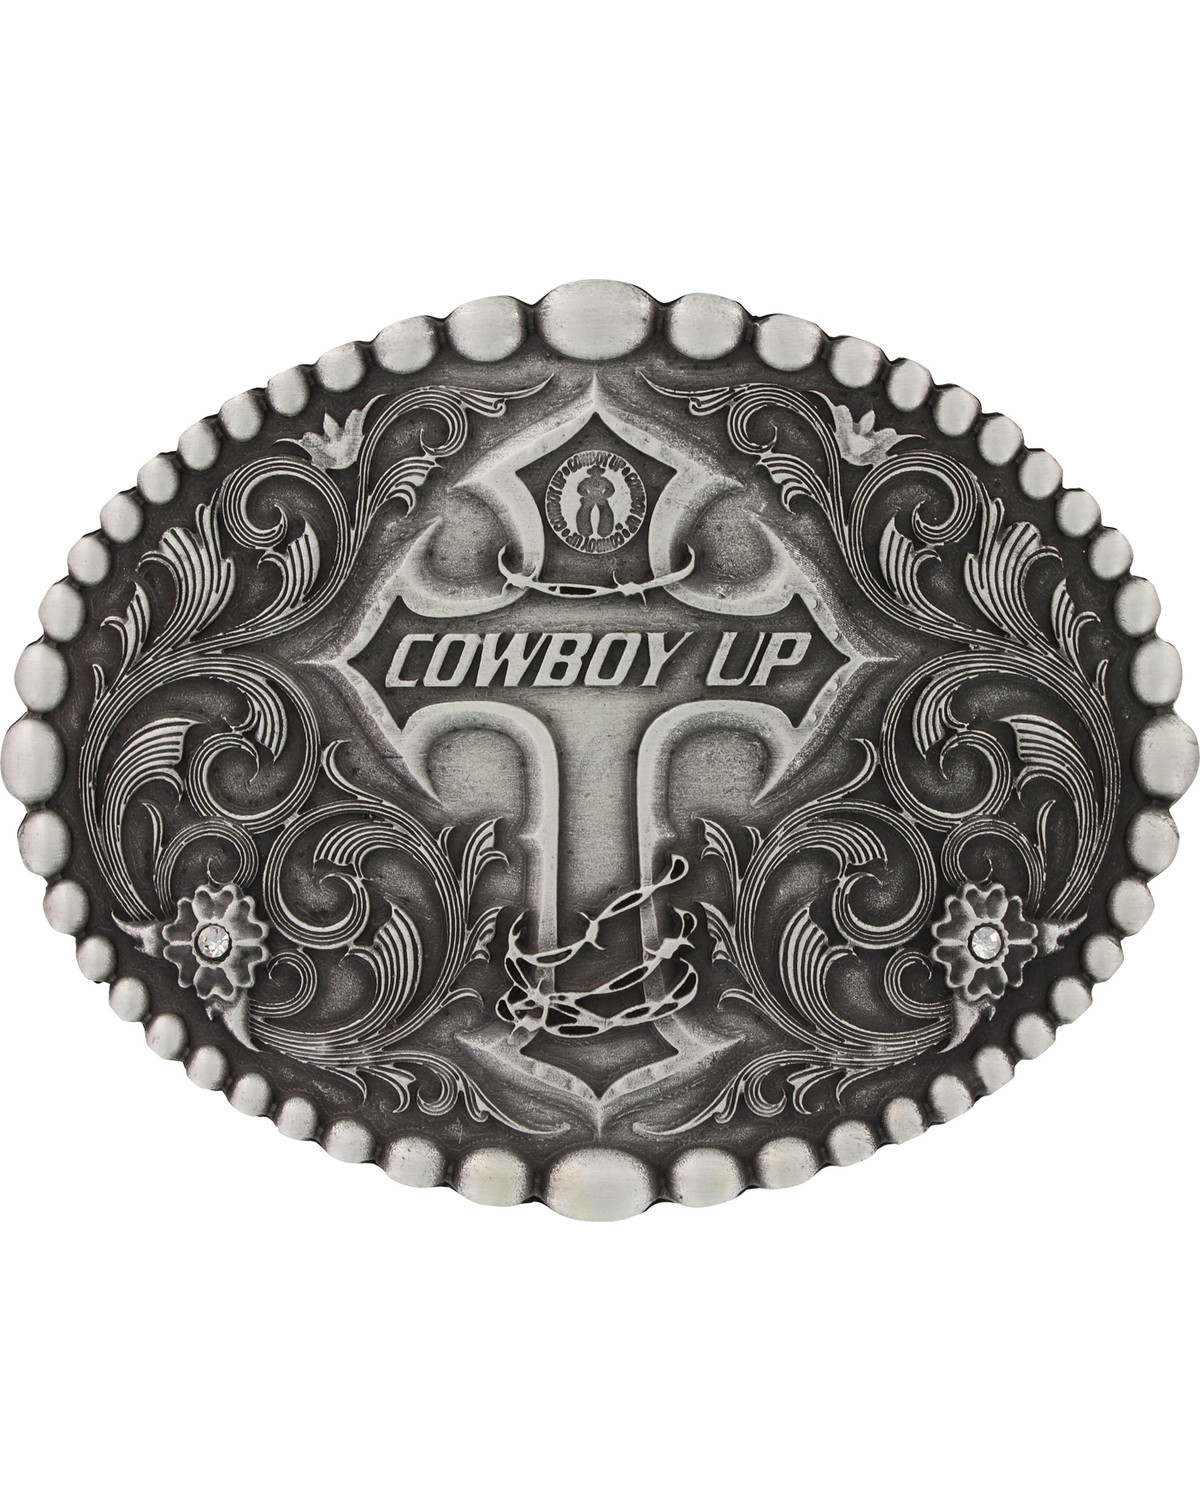 90304aa90 Zoomed Image Montana Silversmiths Classic Oval Beaded Trim Cowboy Up  Attitude Belt Buckle